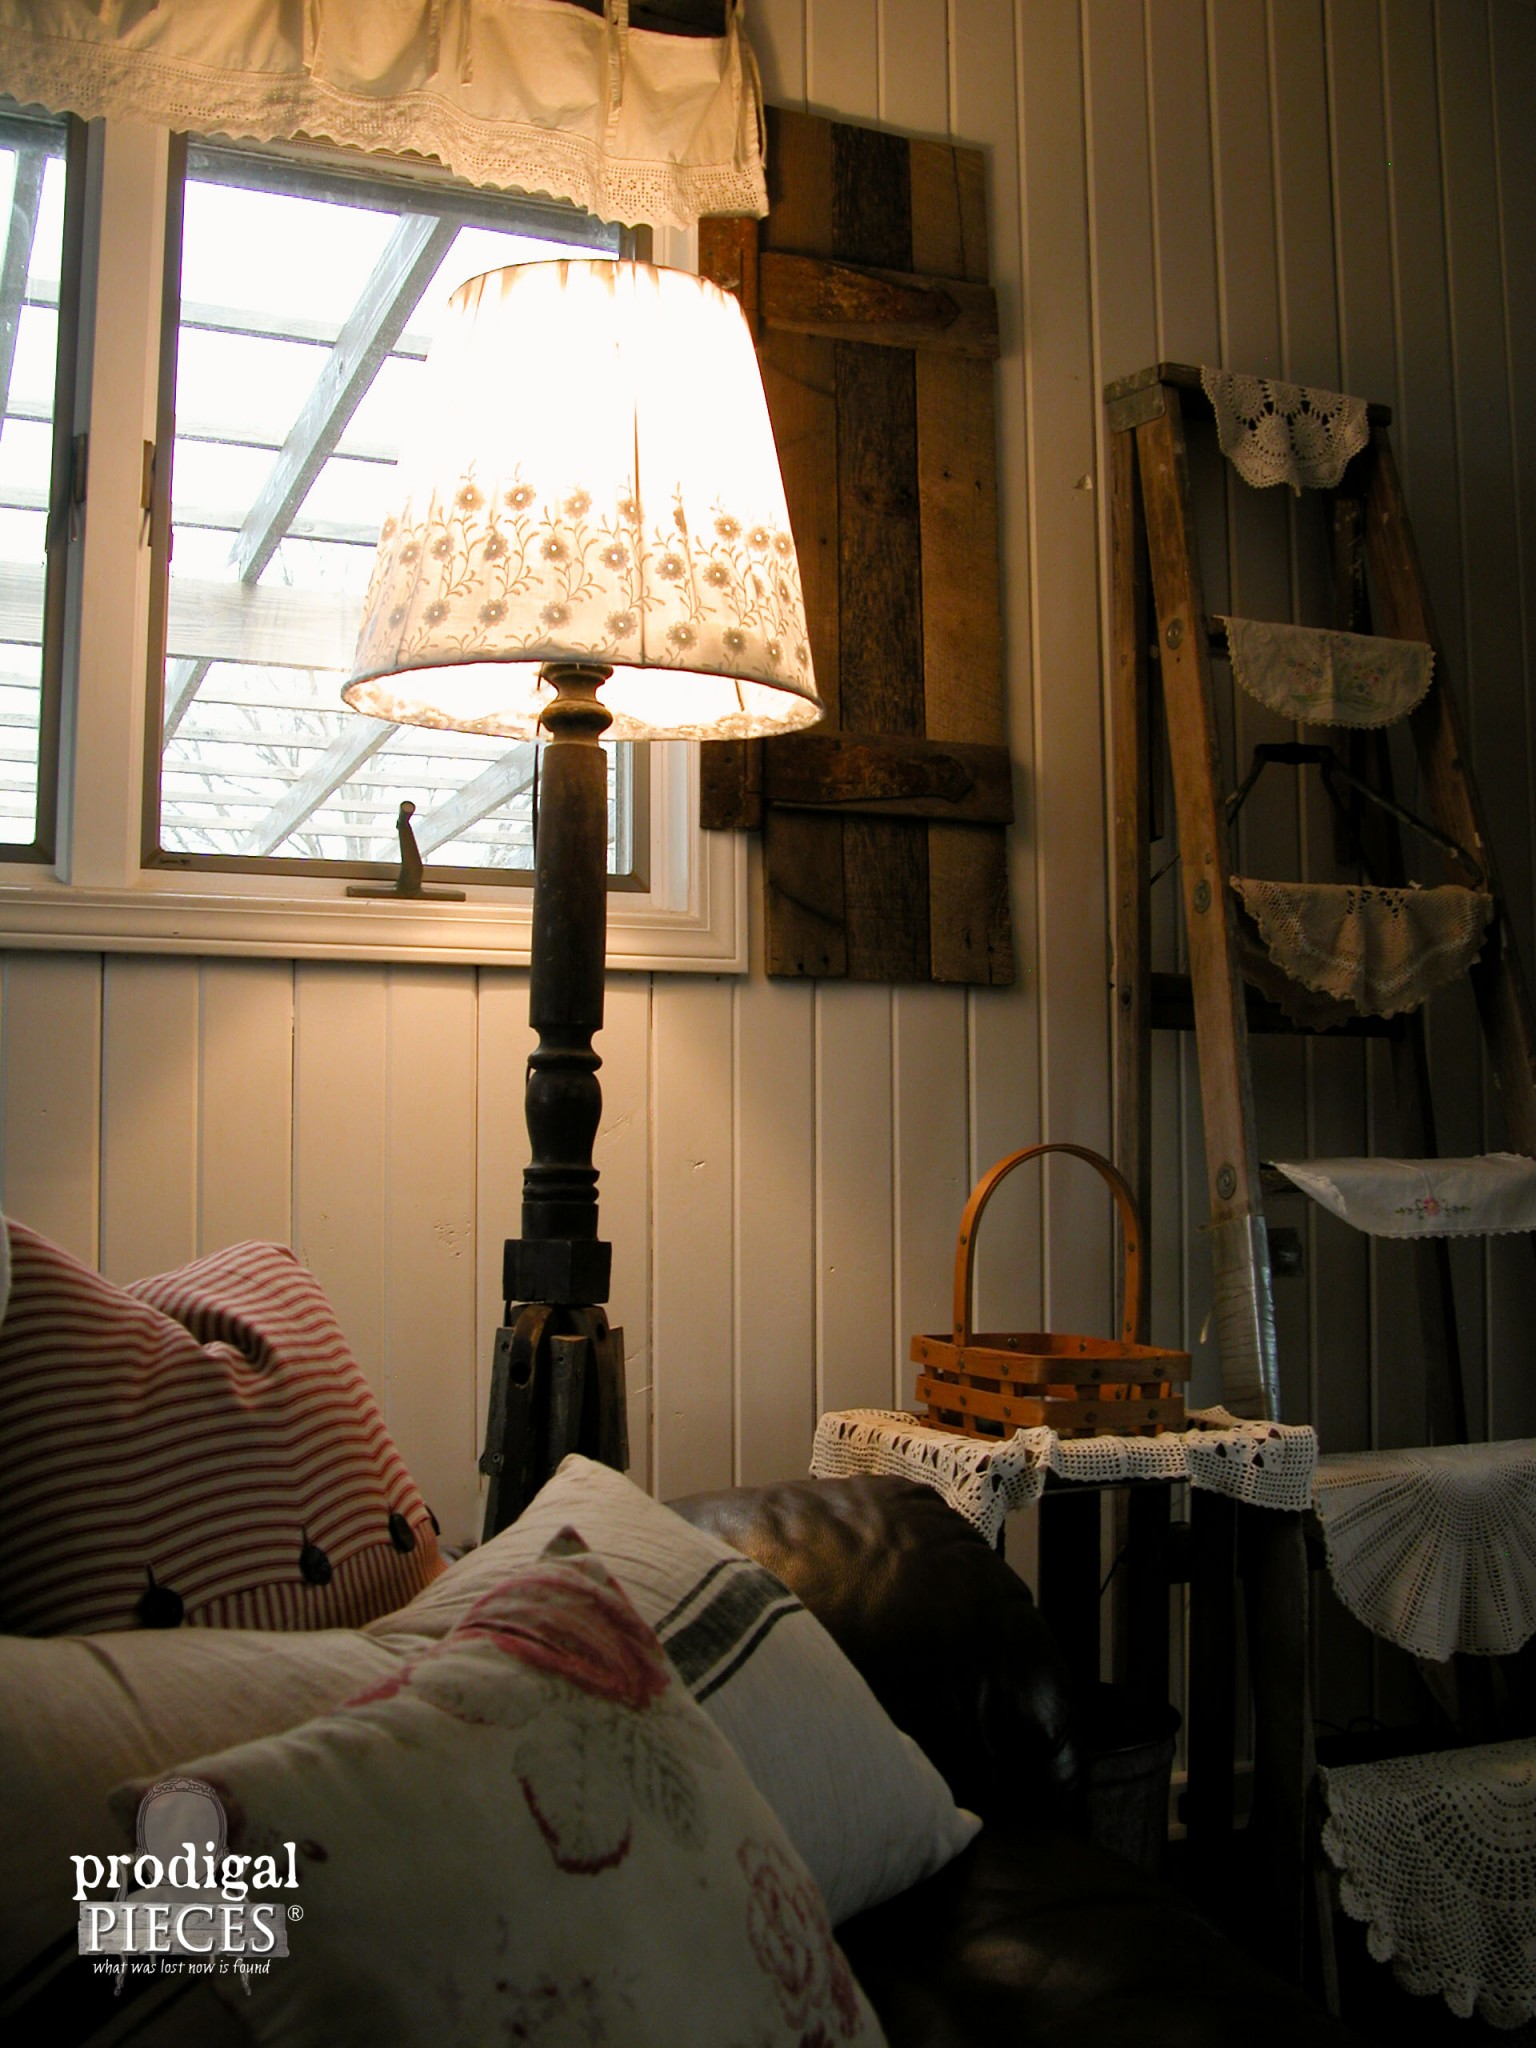 Repurposed Antique Rocker Lamp Lit | Prodigal Pieces | www.prodigalpieces.com